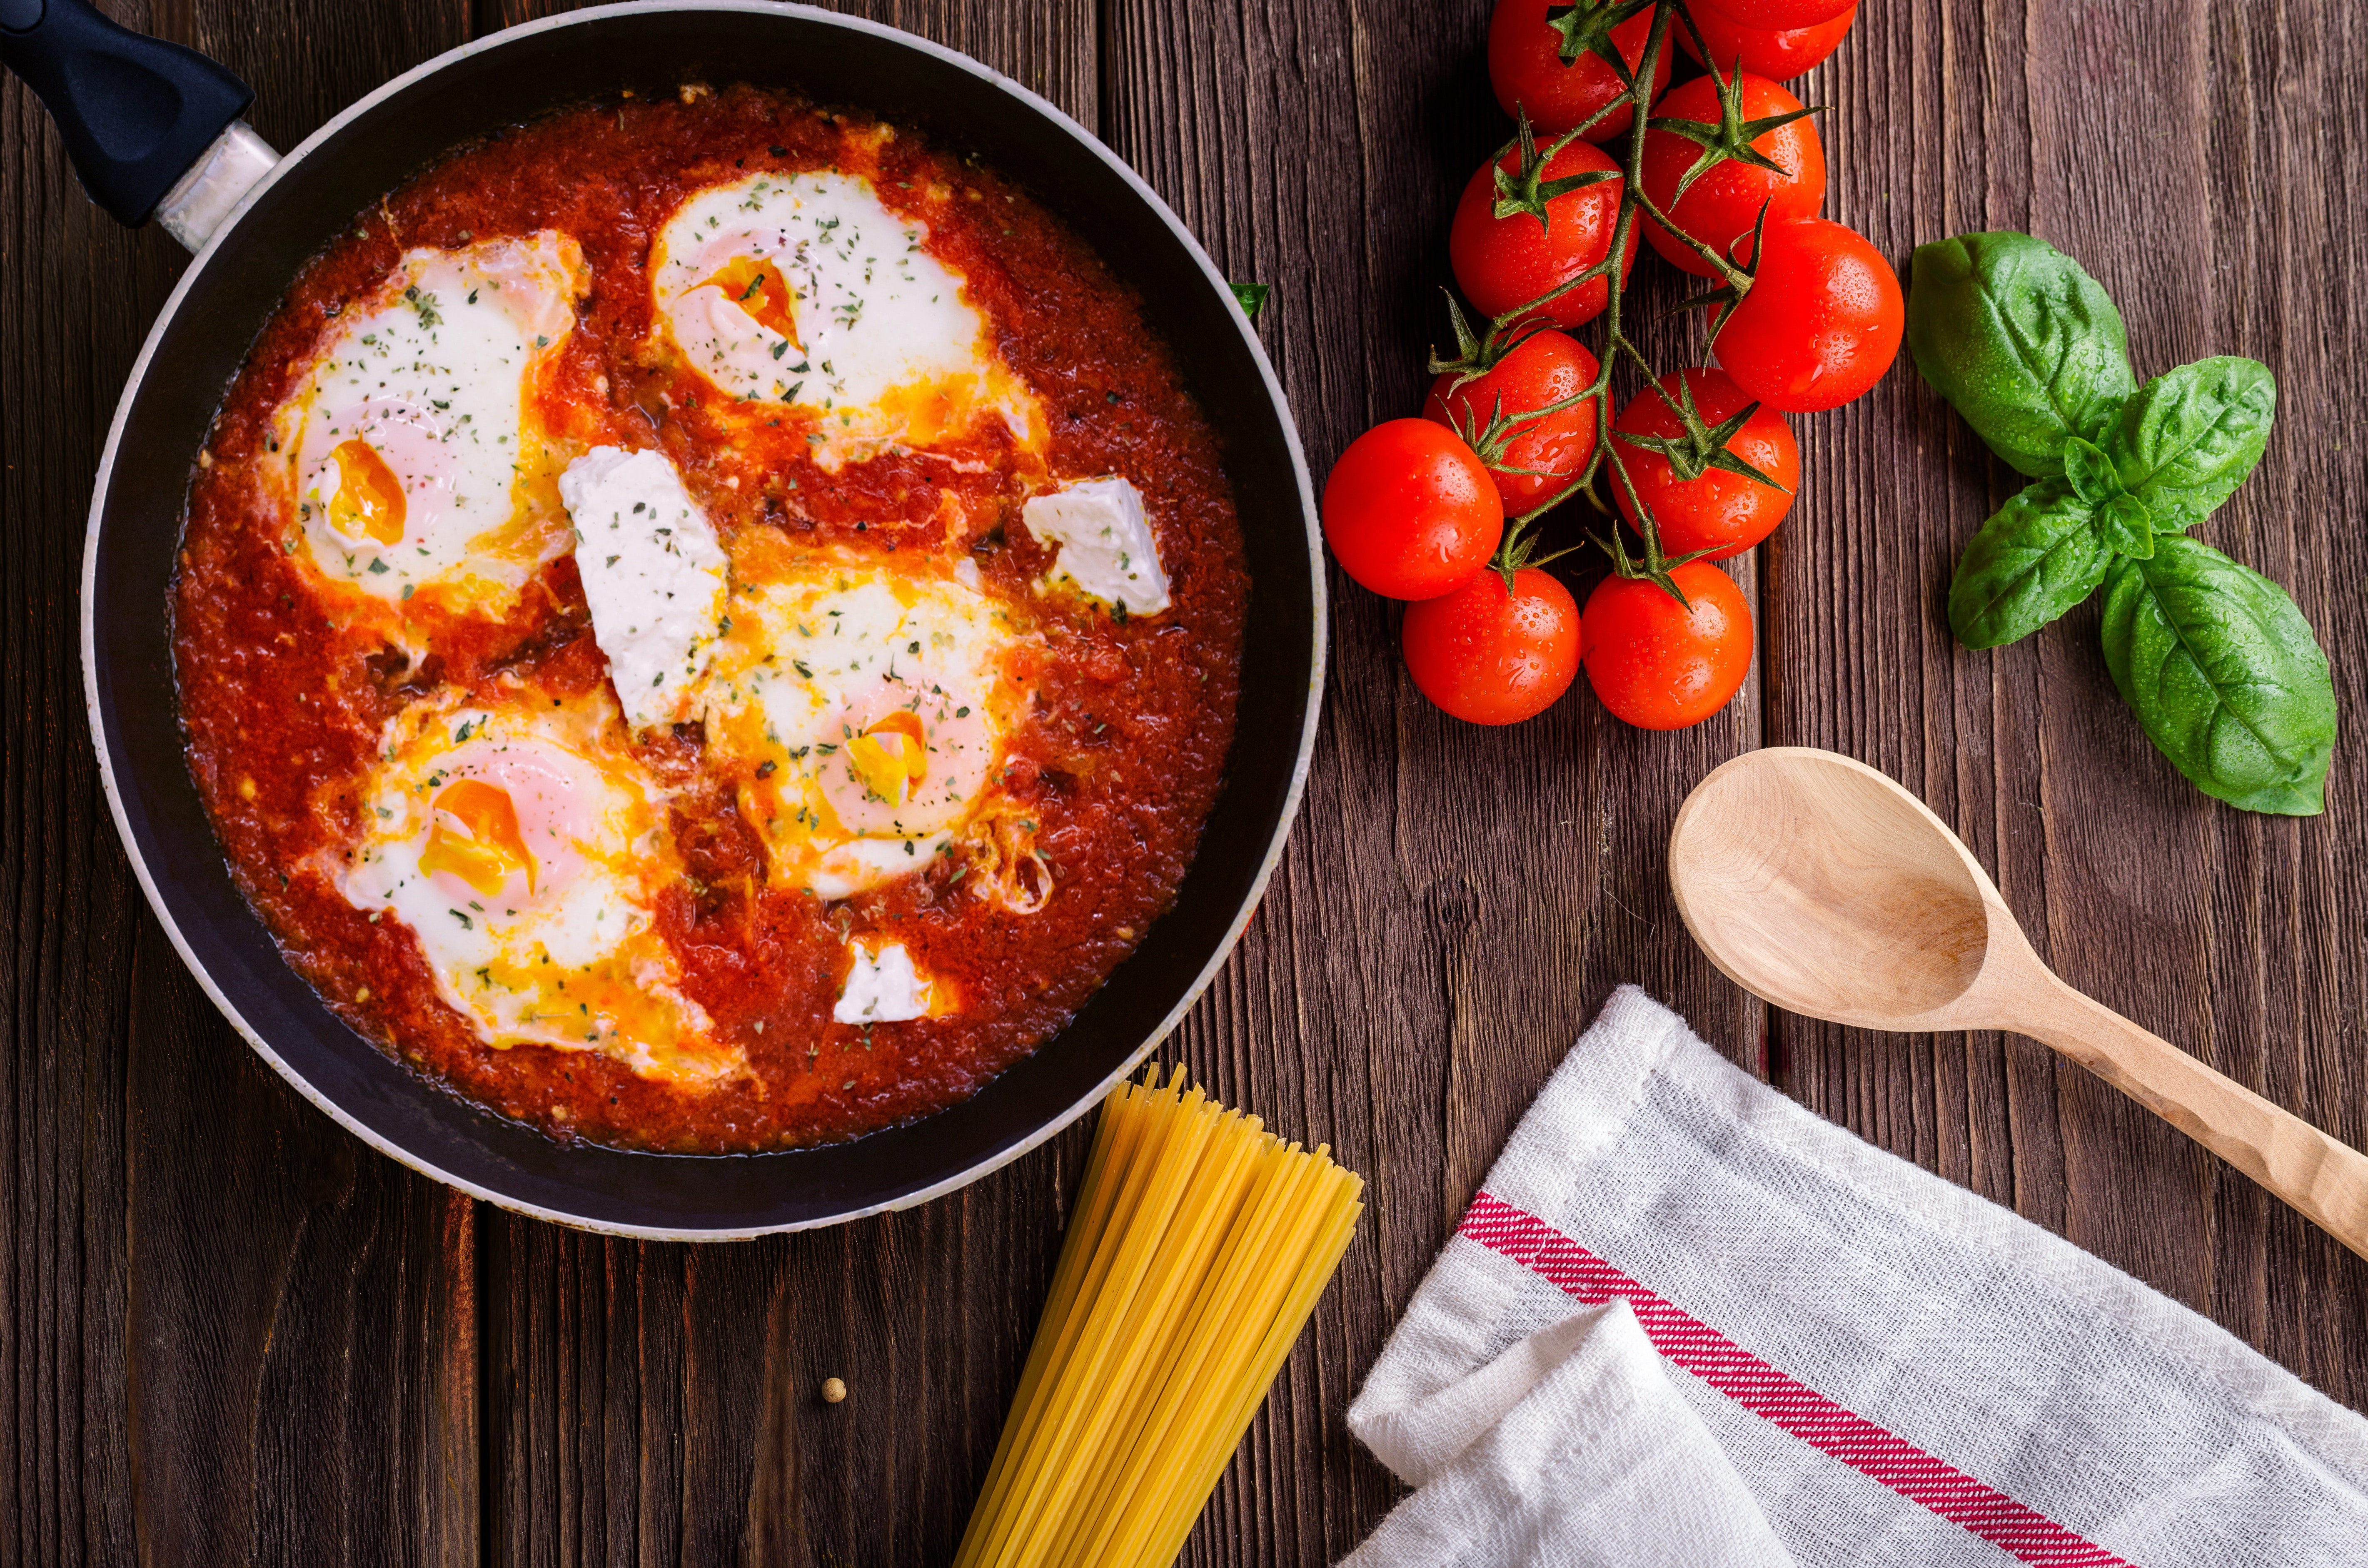 Black Frying Pan With Spaghetti Sauce Near Brown Wooden Ladle and Ripe Tomatoes, Basil, Ingredient, Wood, Tomatoes, HQ Photo